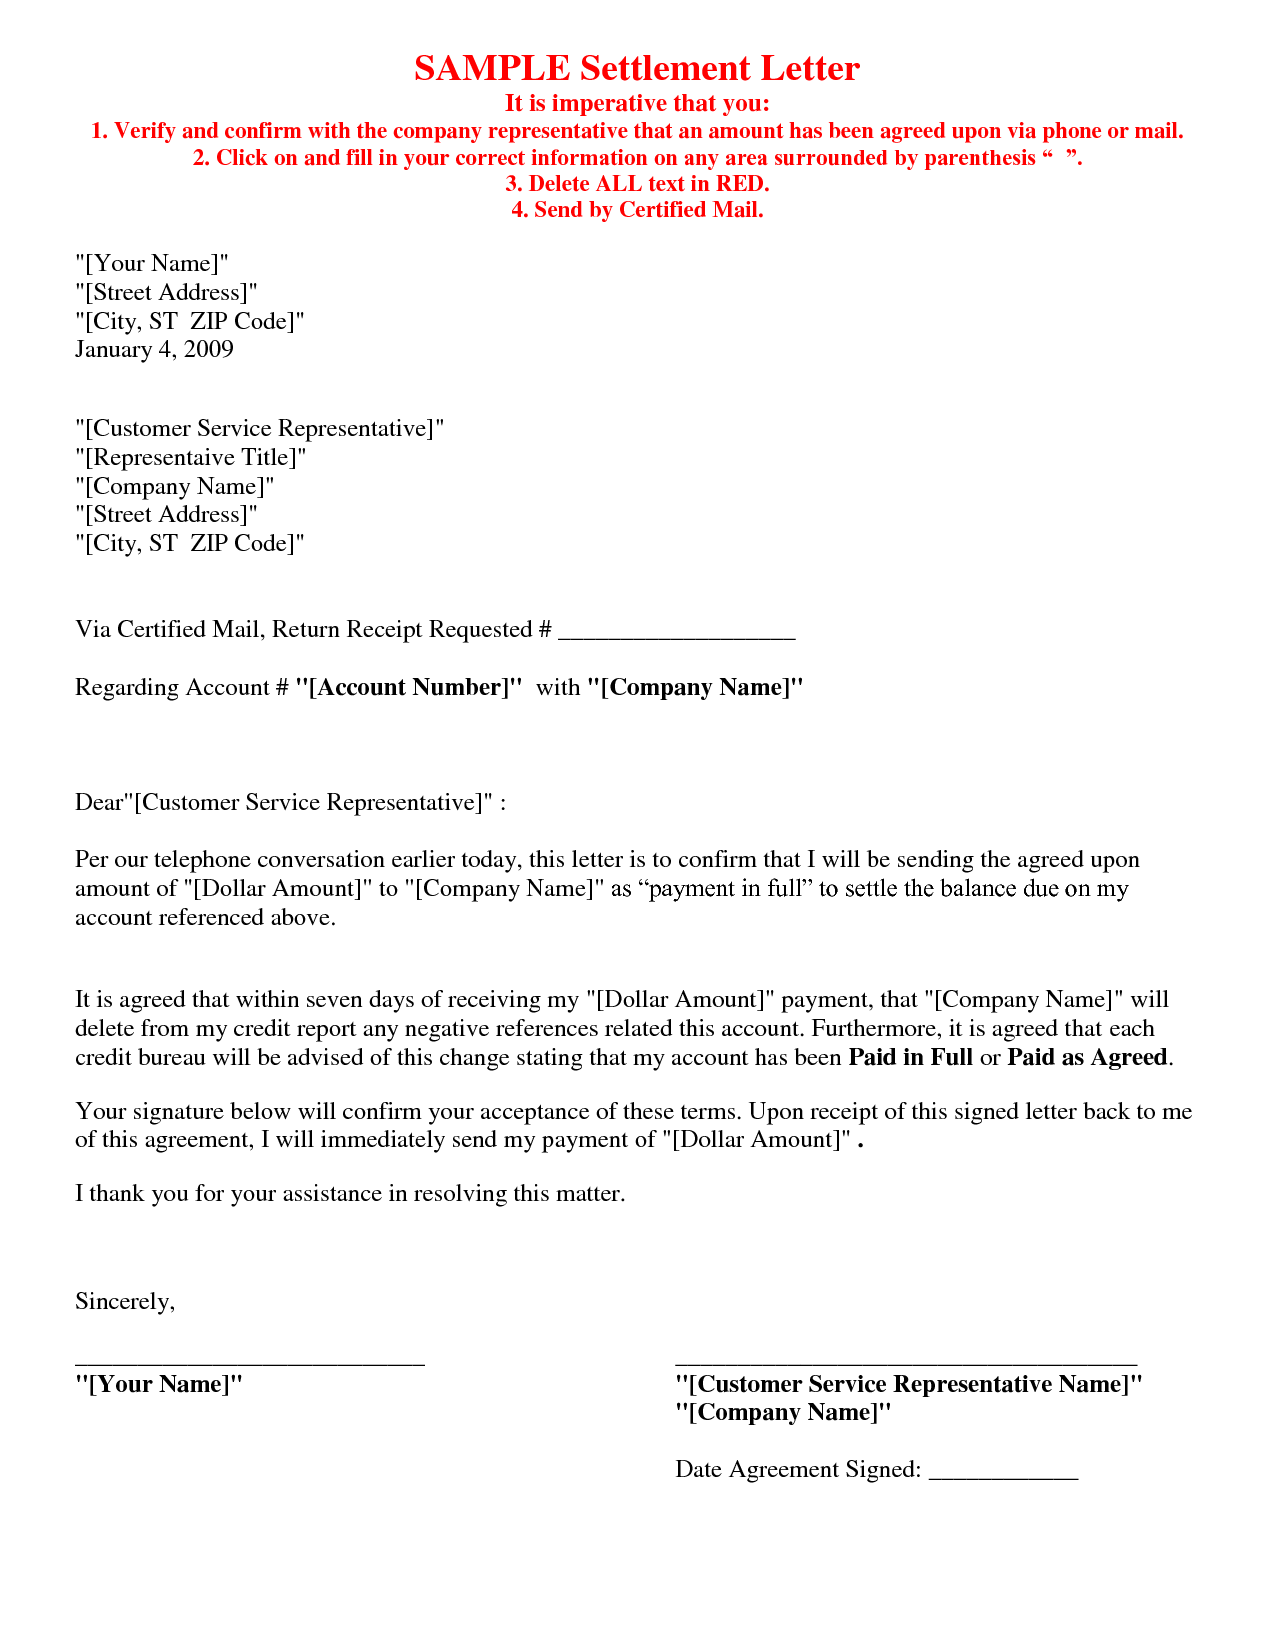 Picture 5 of 17 debt settlement agreement letter sample picture 5 of 17 debt settlement agreement letter sample agreement letter template spiritdancerdesigns Choice Image